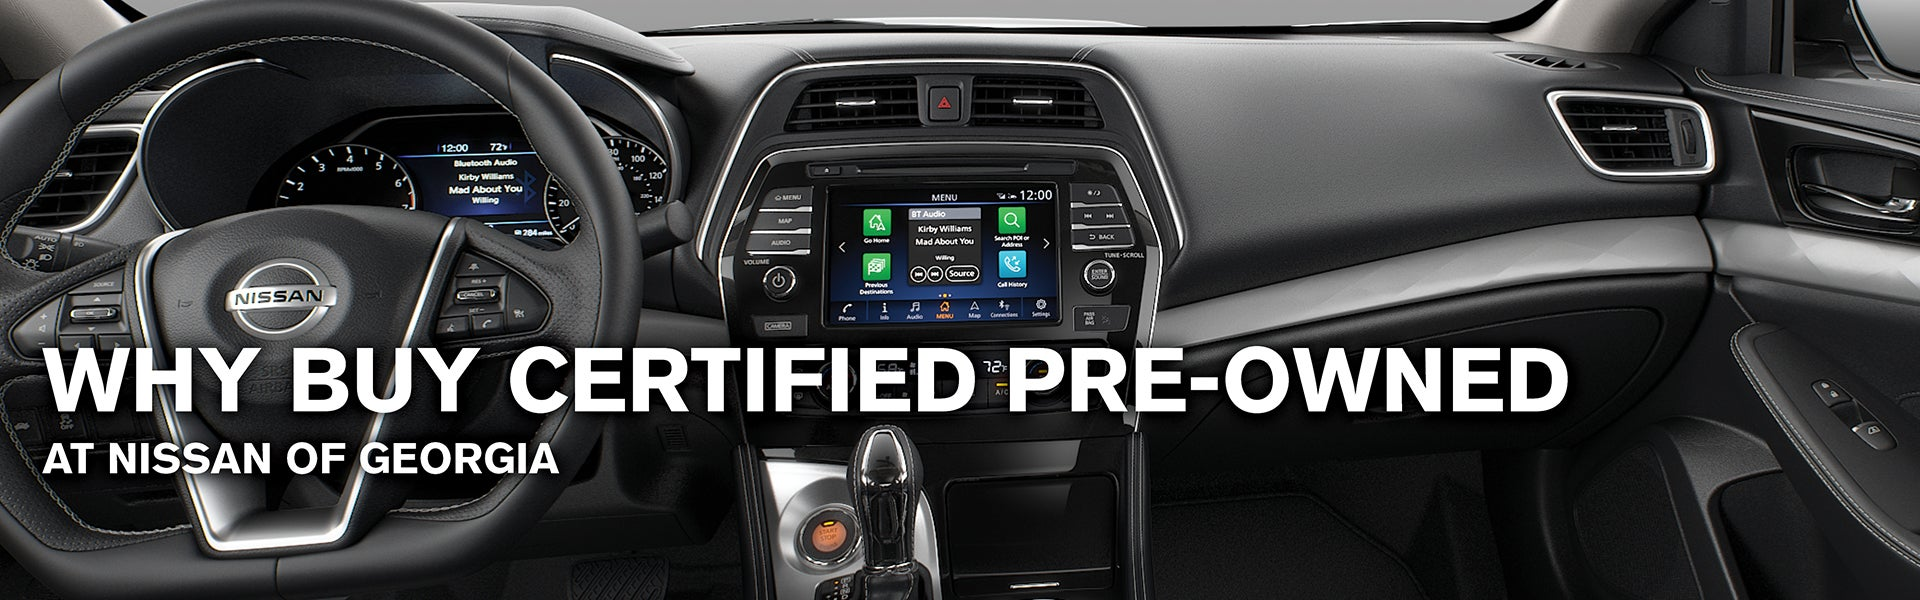 Nissan Certified Pre Owned >> Why Buy Certified Pre Owned